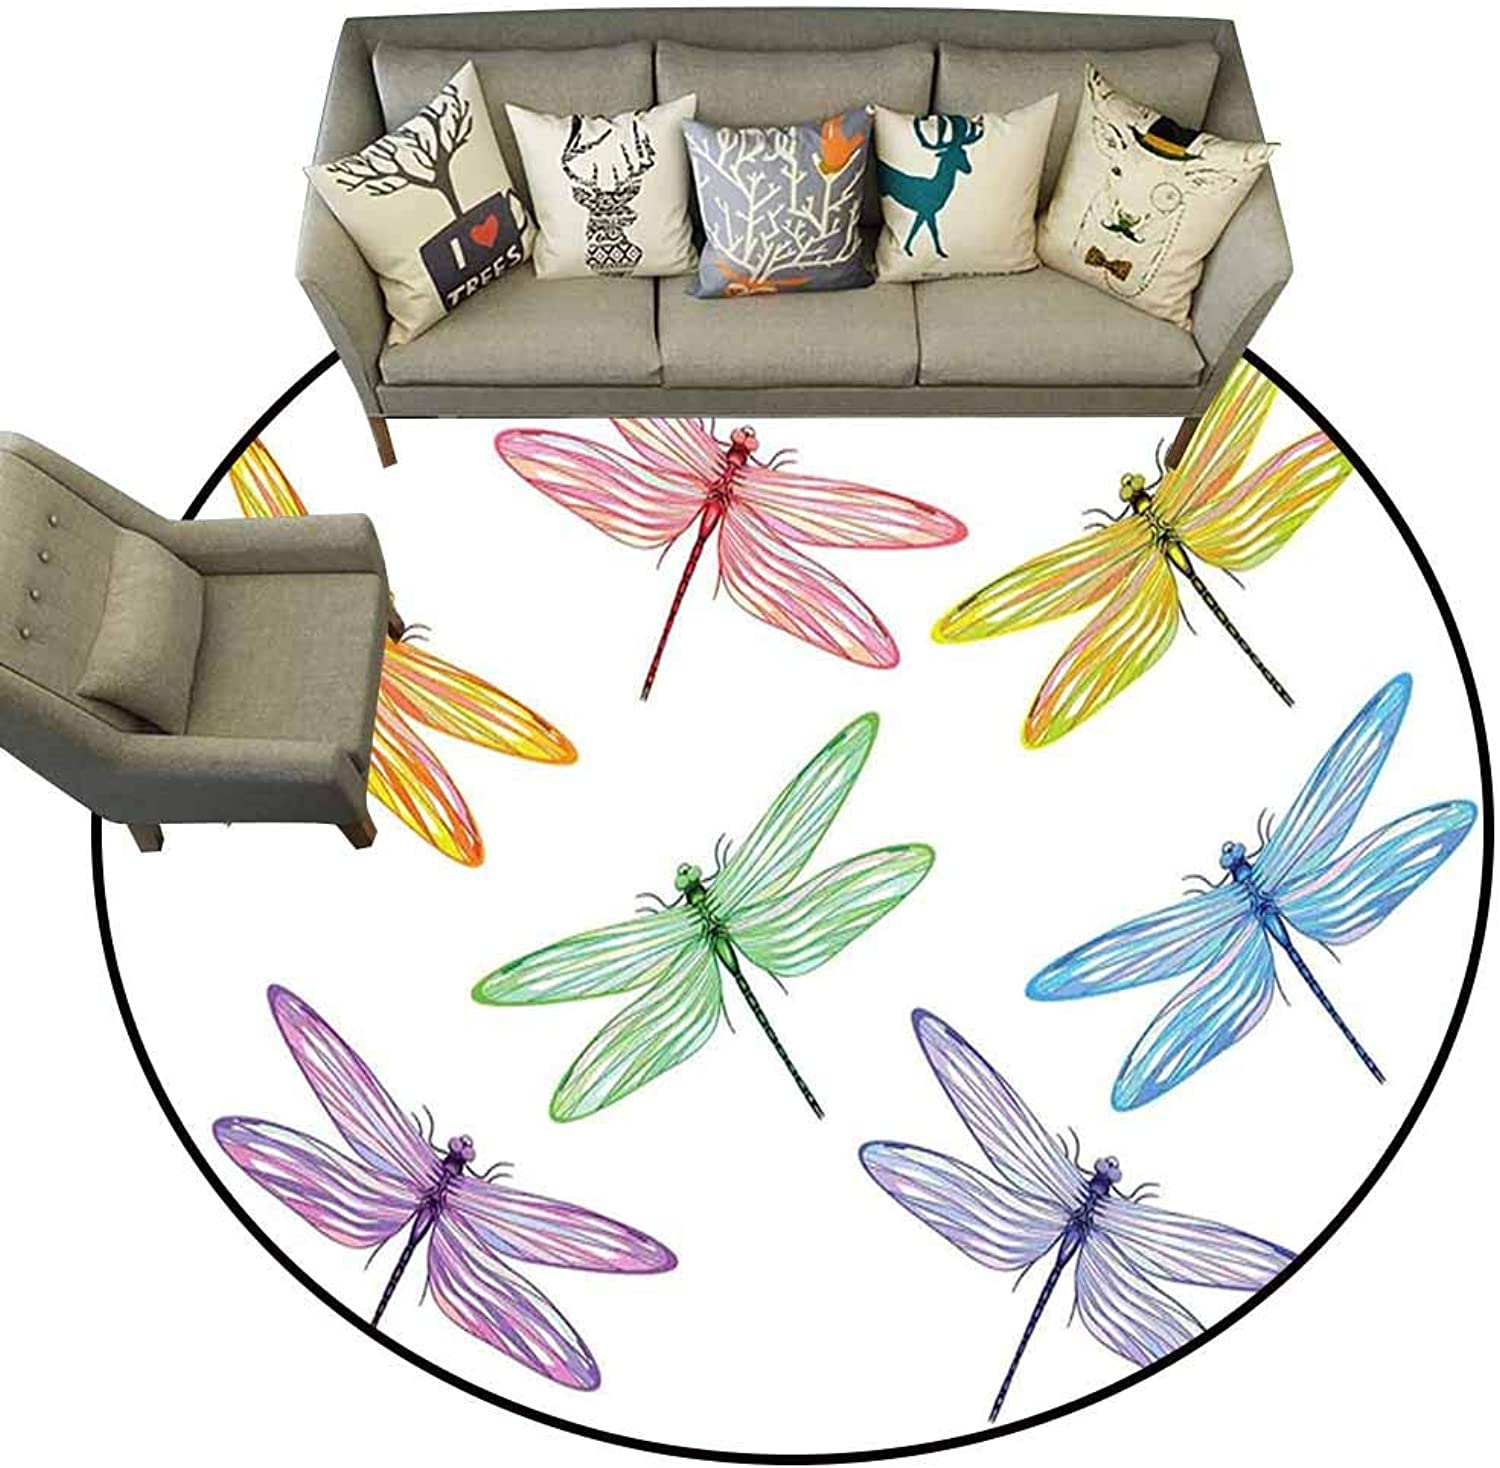 Doormat Kitchen Bathroom,Dragonfly,Group of Dragonflies with colord Patches Elongated Body Winged Animal Design,Multicolor,shoes Scraper Door Mat Living Room Rug4.6 feet